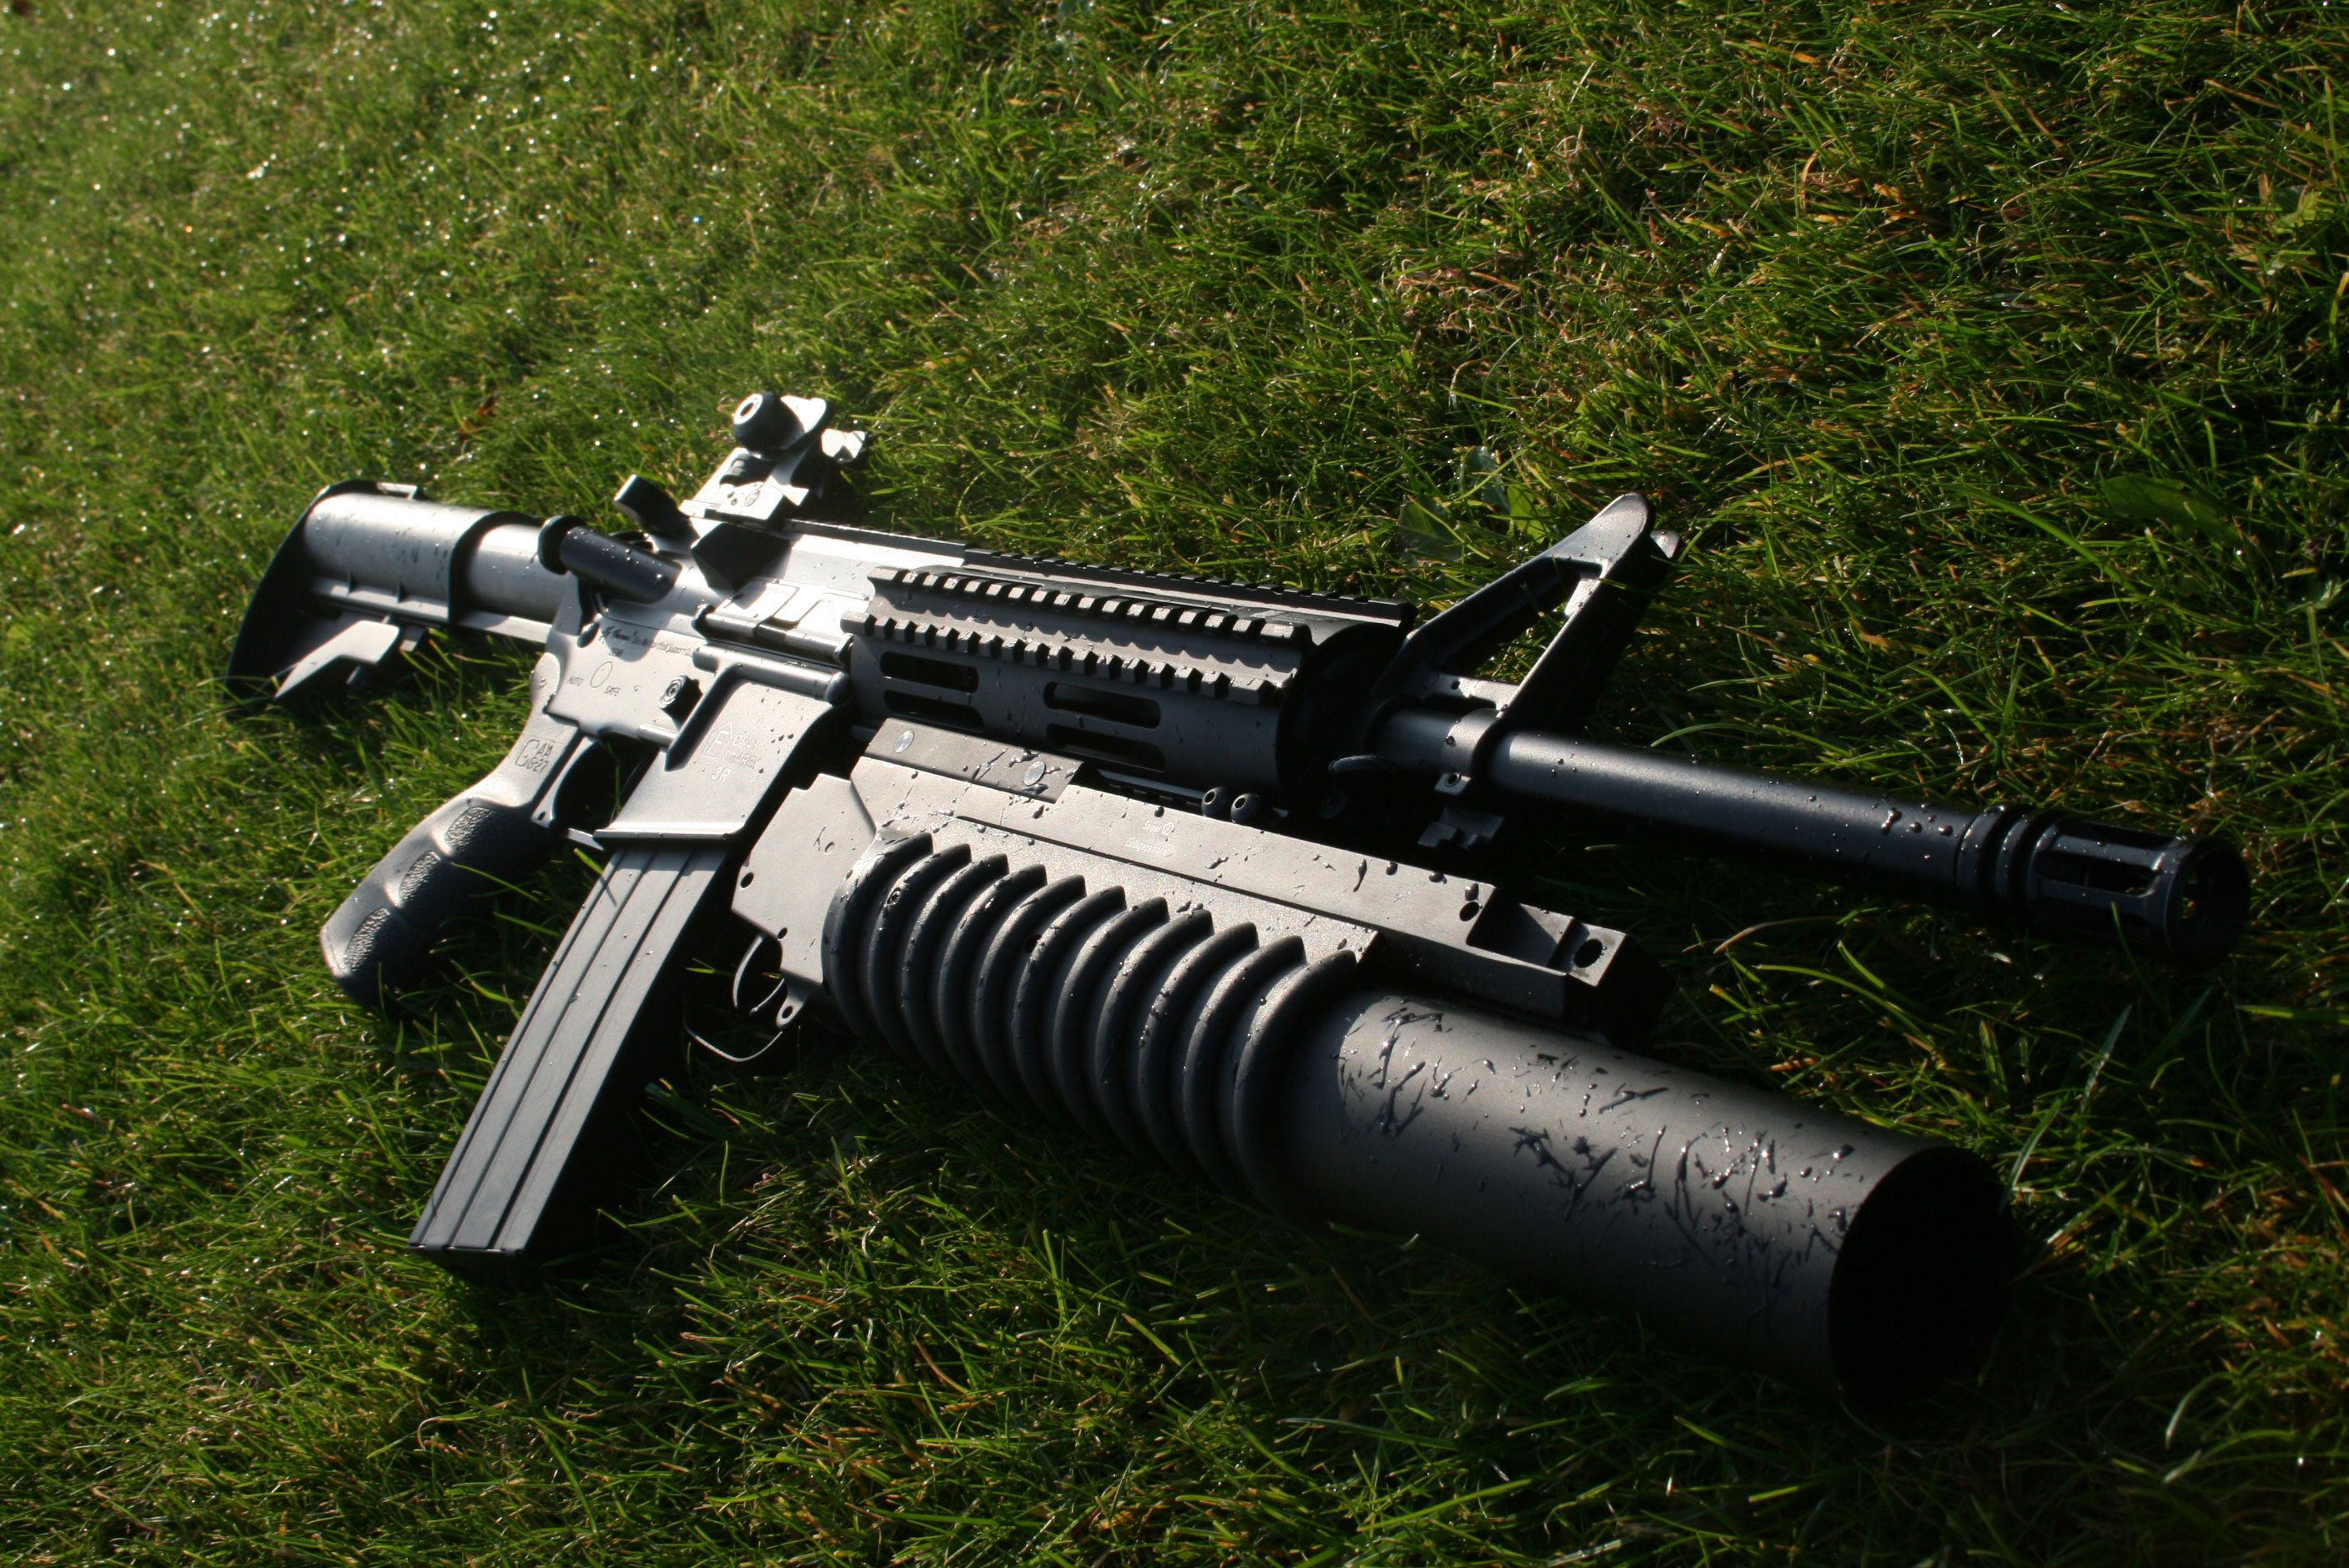 M16 assault rifle m203